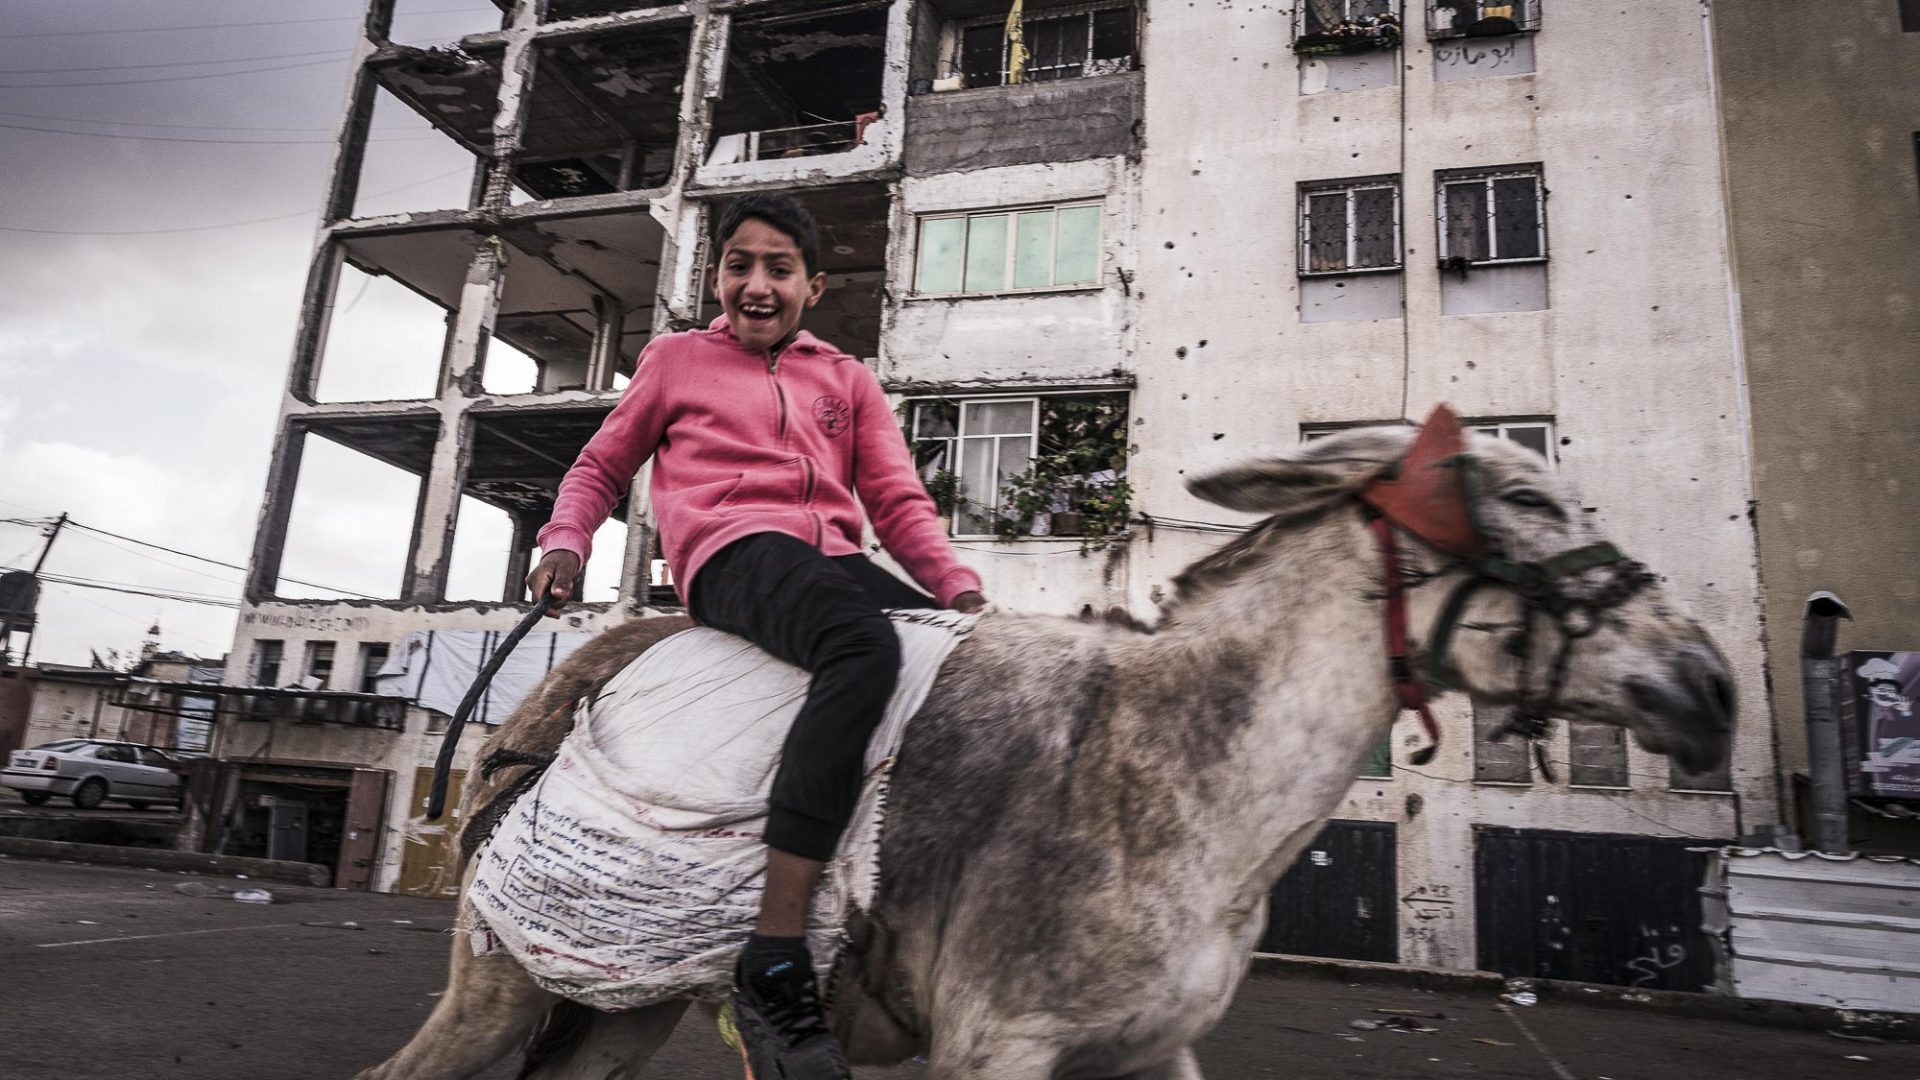 A young boy rides his donkey past several partially destroyed buildings in Gaza.